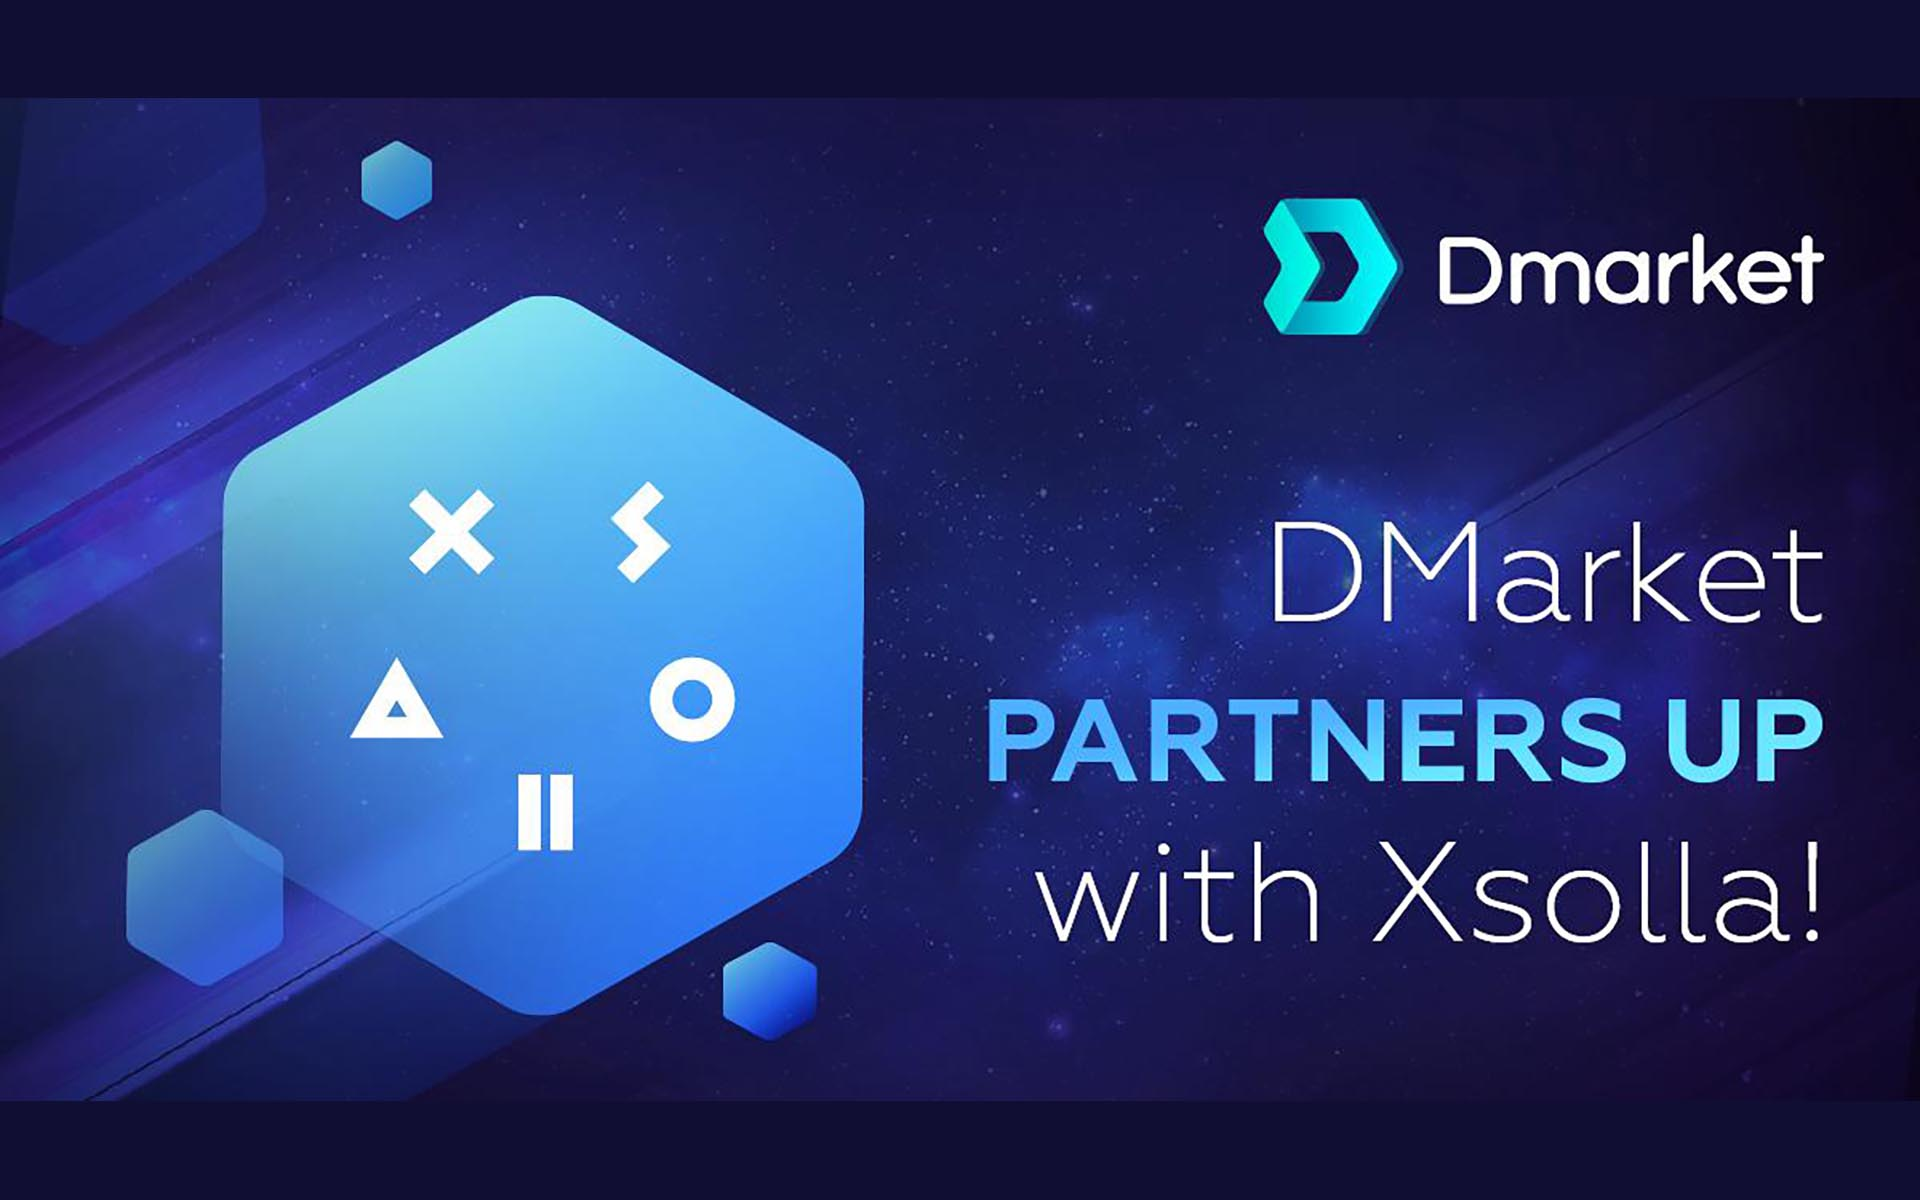 DMarket Announces Partnership with Xsolla